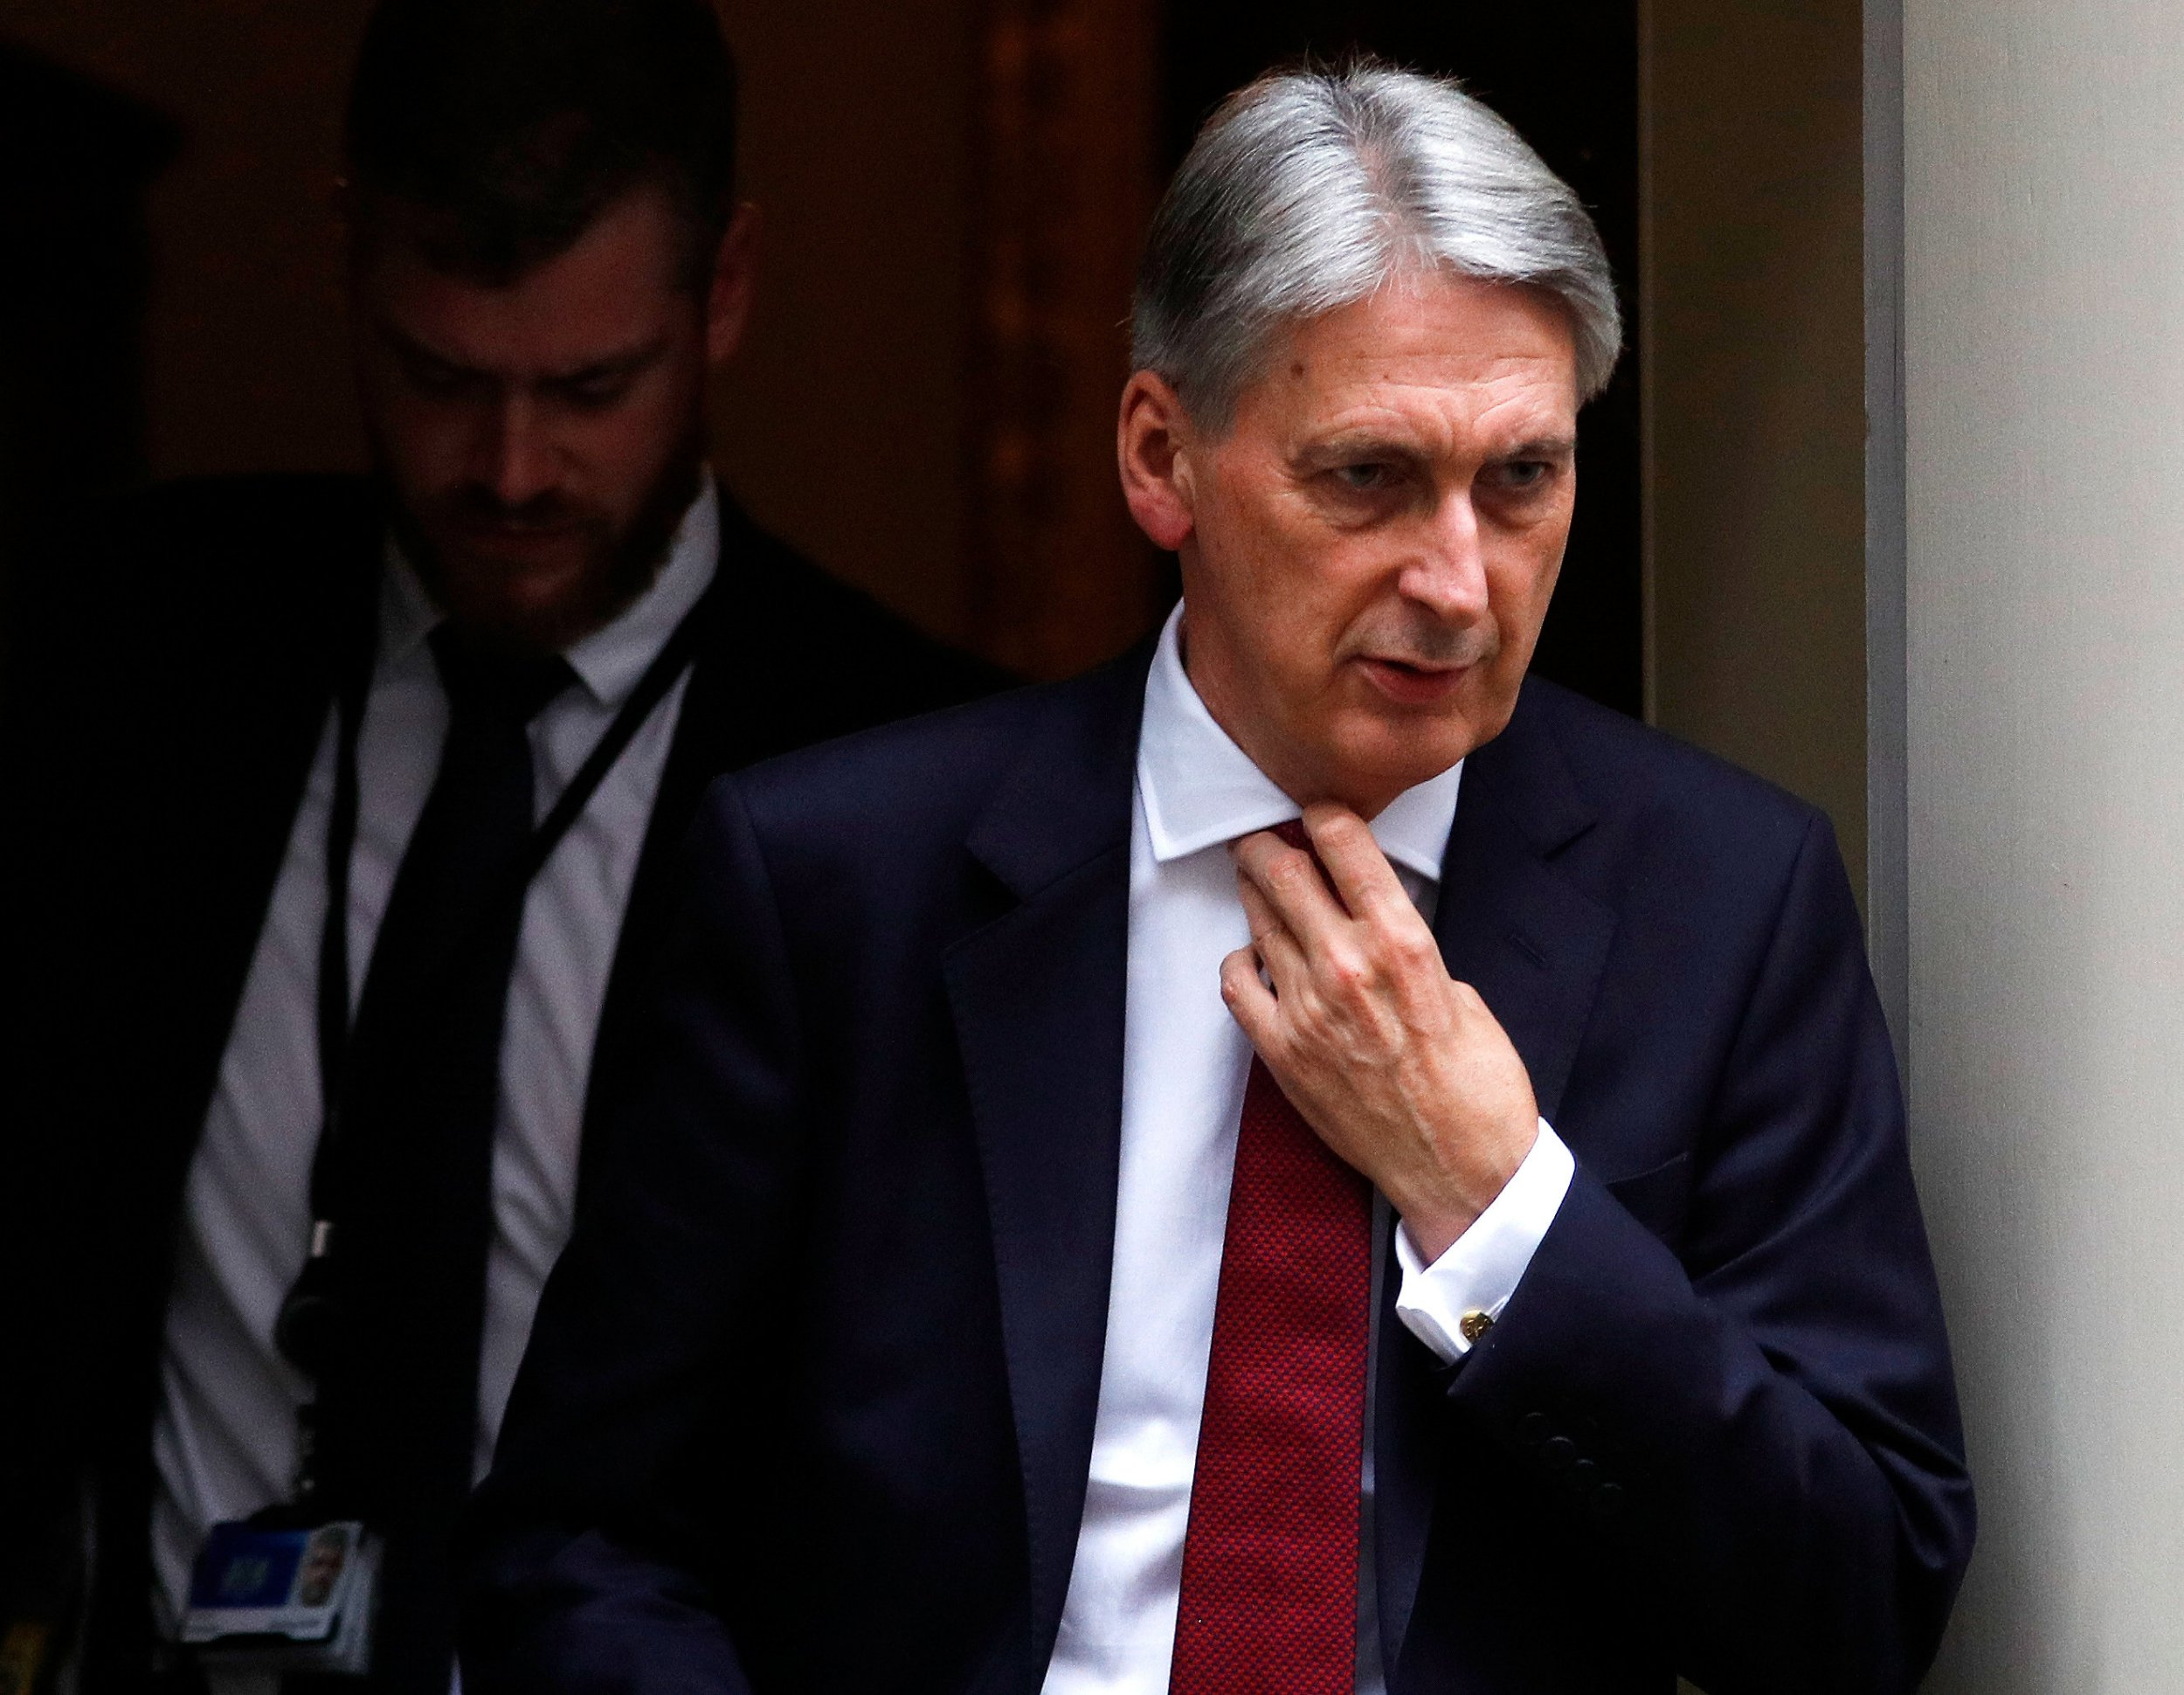 Britain's Chancellor of the Exchequer Philip Hammond leaves 11 Downing Street in London, Britain, October 15, 2018. REUTERS/Peter Nicholls